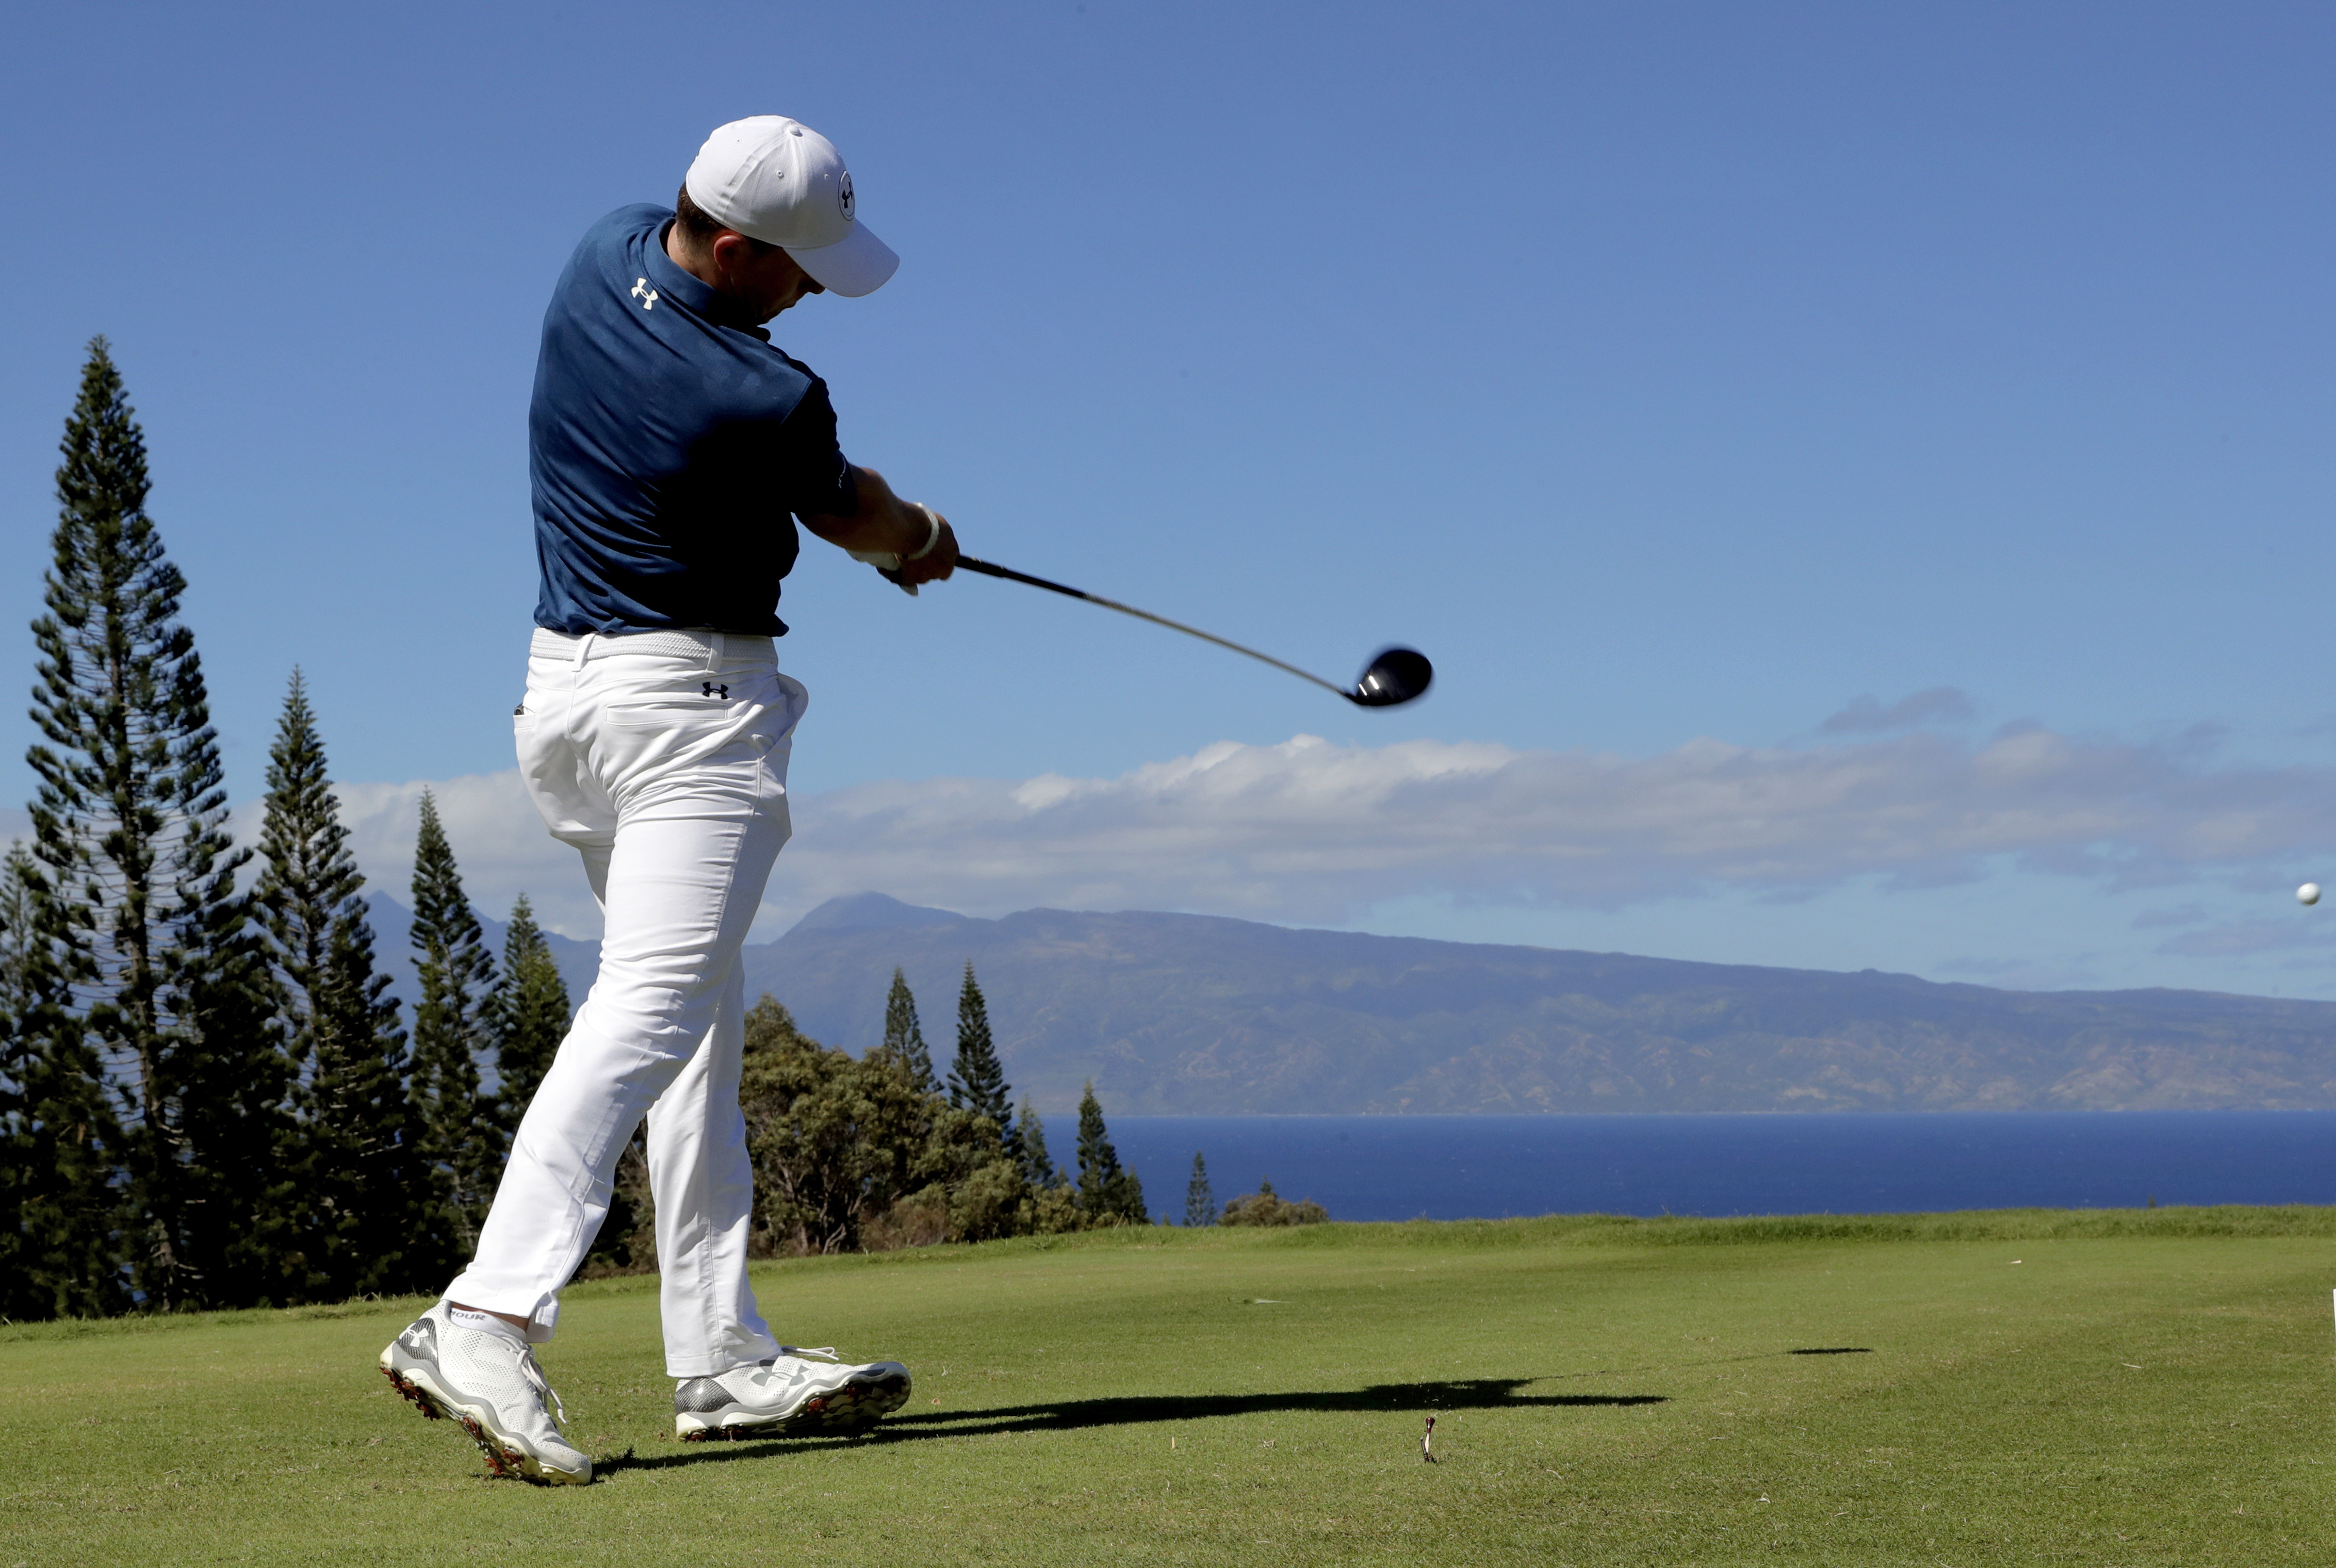 Jordan Spieth hits from the 18th tee during the final round of the Tournament of Champions golf event, Sunday, Jan. 8, 2017, at Kapalua Plantation Course in Kapalua, Hawaii. (AP Photo/Matt